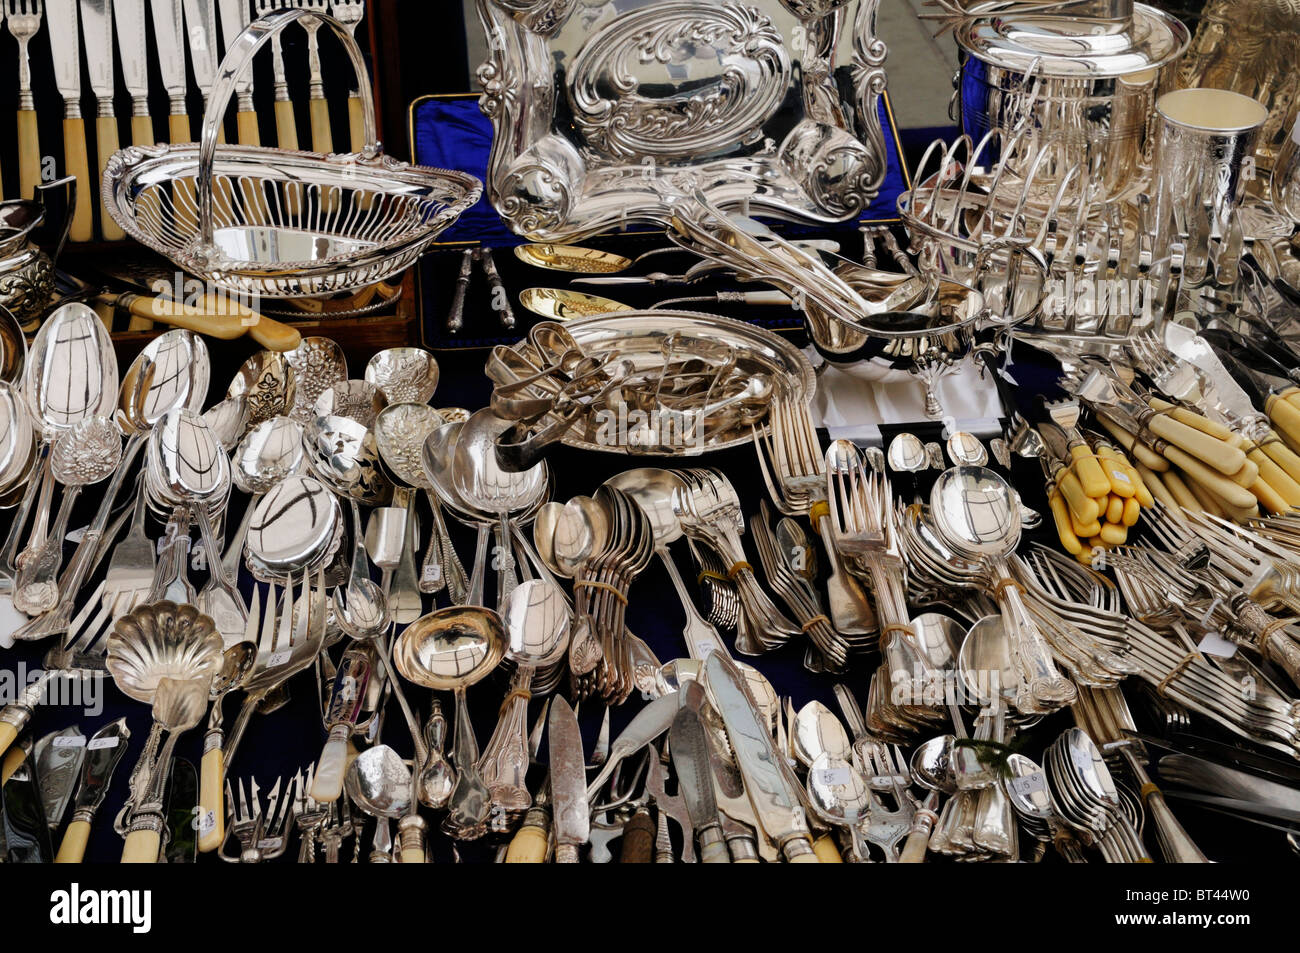 Silver Cutlery on a stall at Portobello Road Antiques Market, Notting Hill, London, England, UK - Stock Image